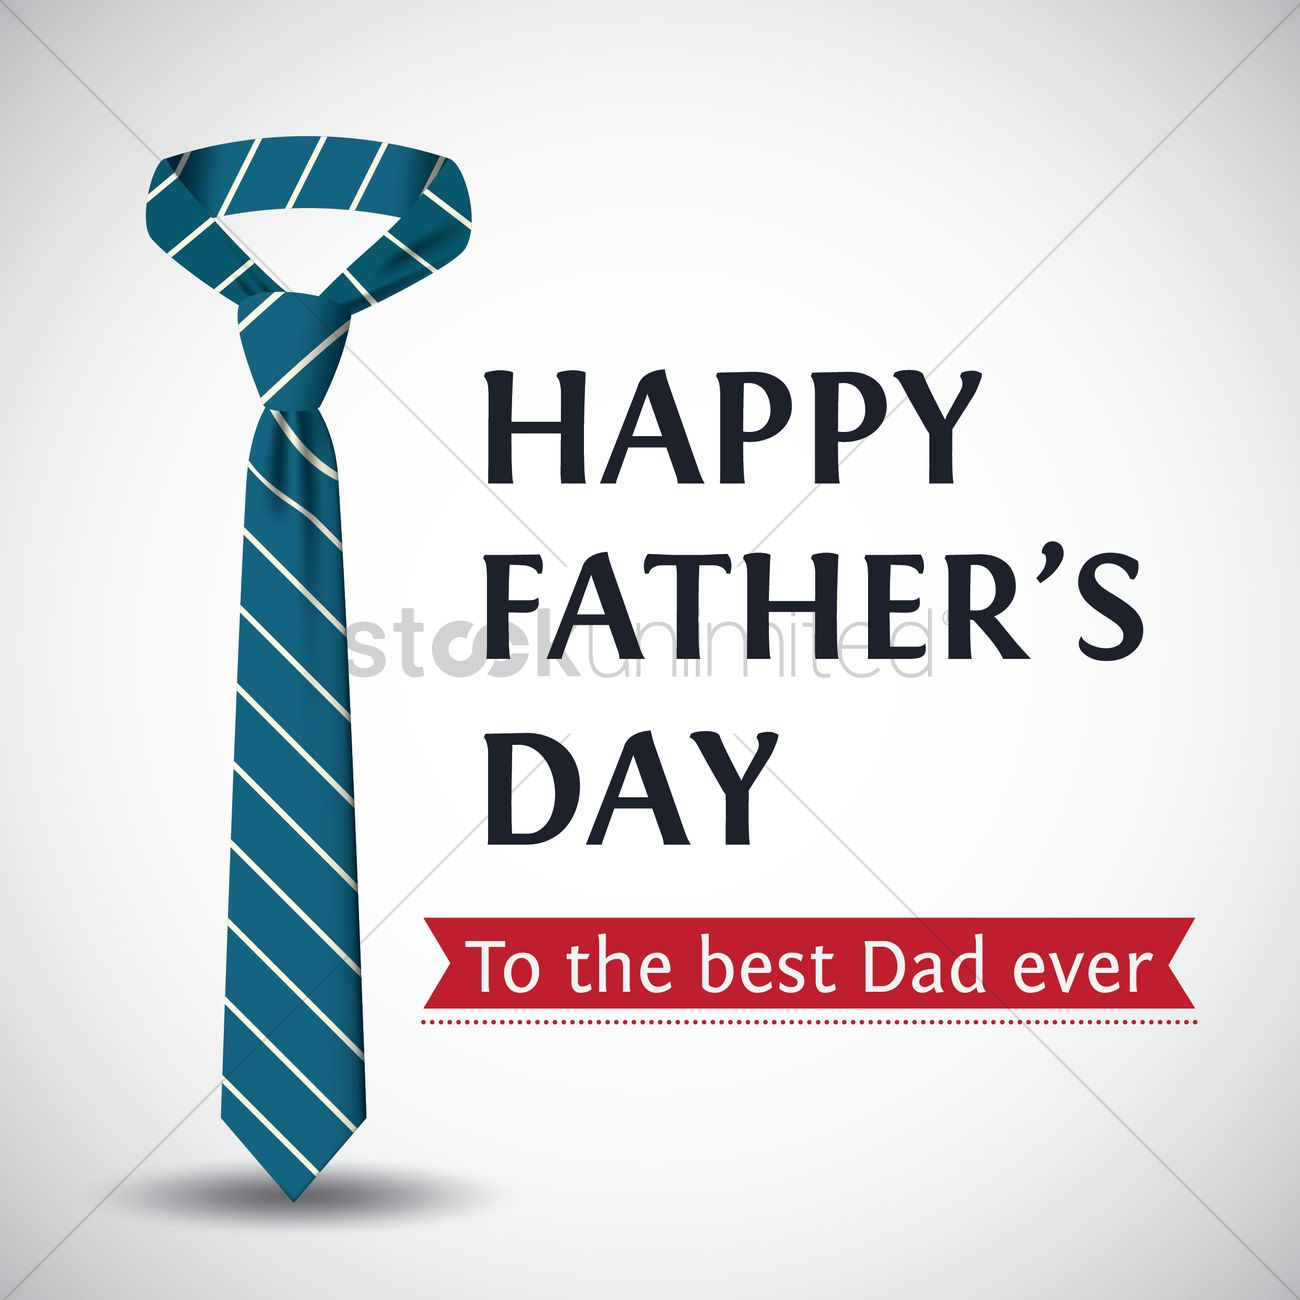 Happy Fathers Day Greeting Vector Image 1619696 Stockunlimited